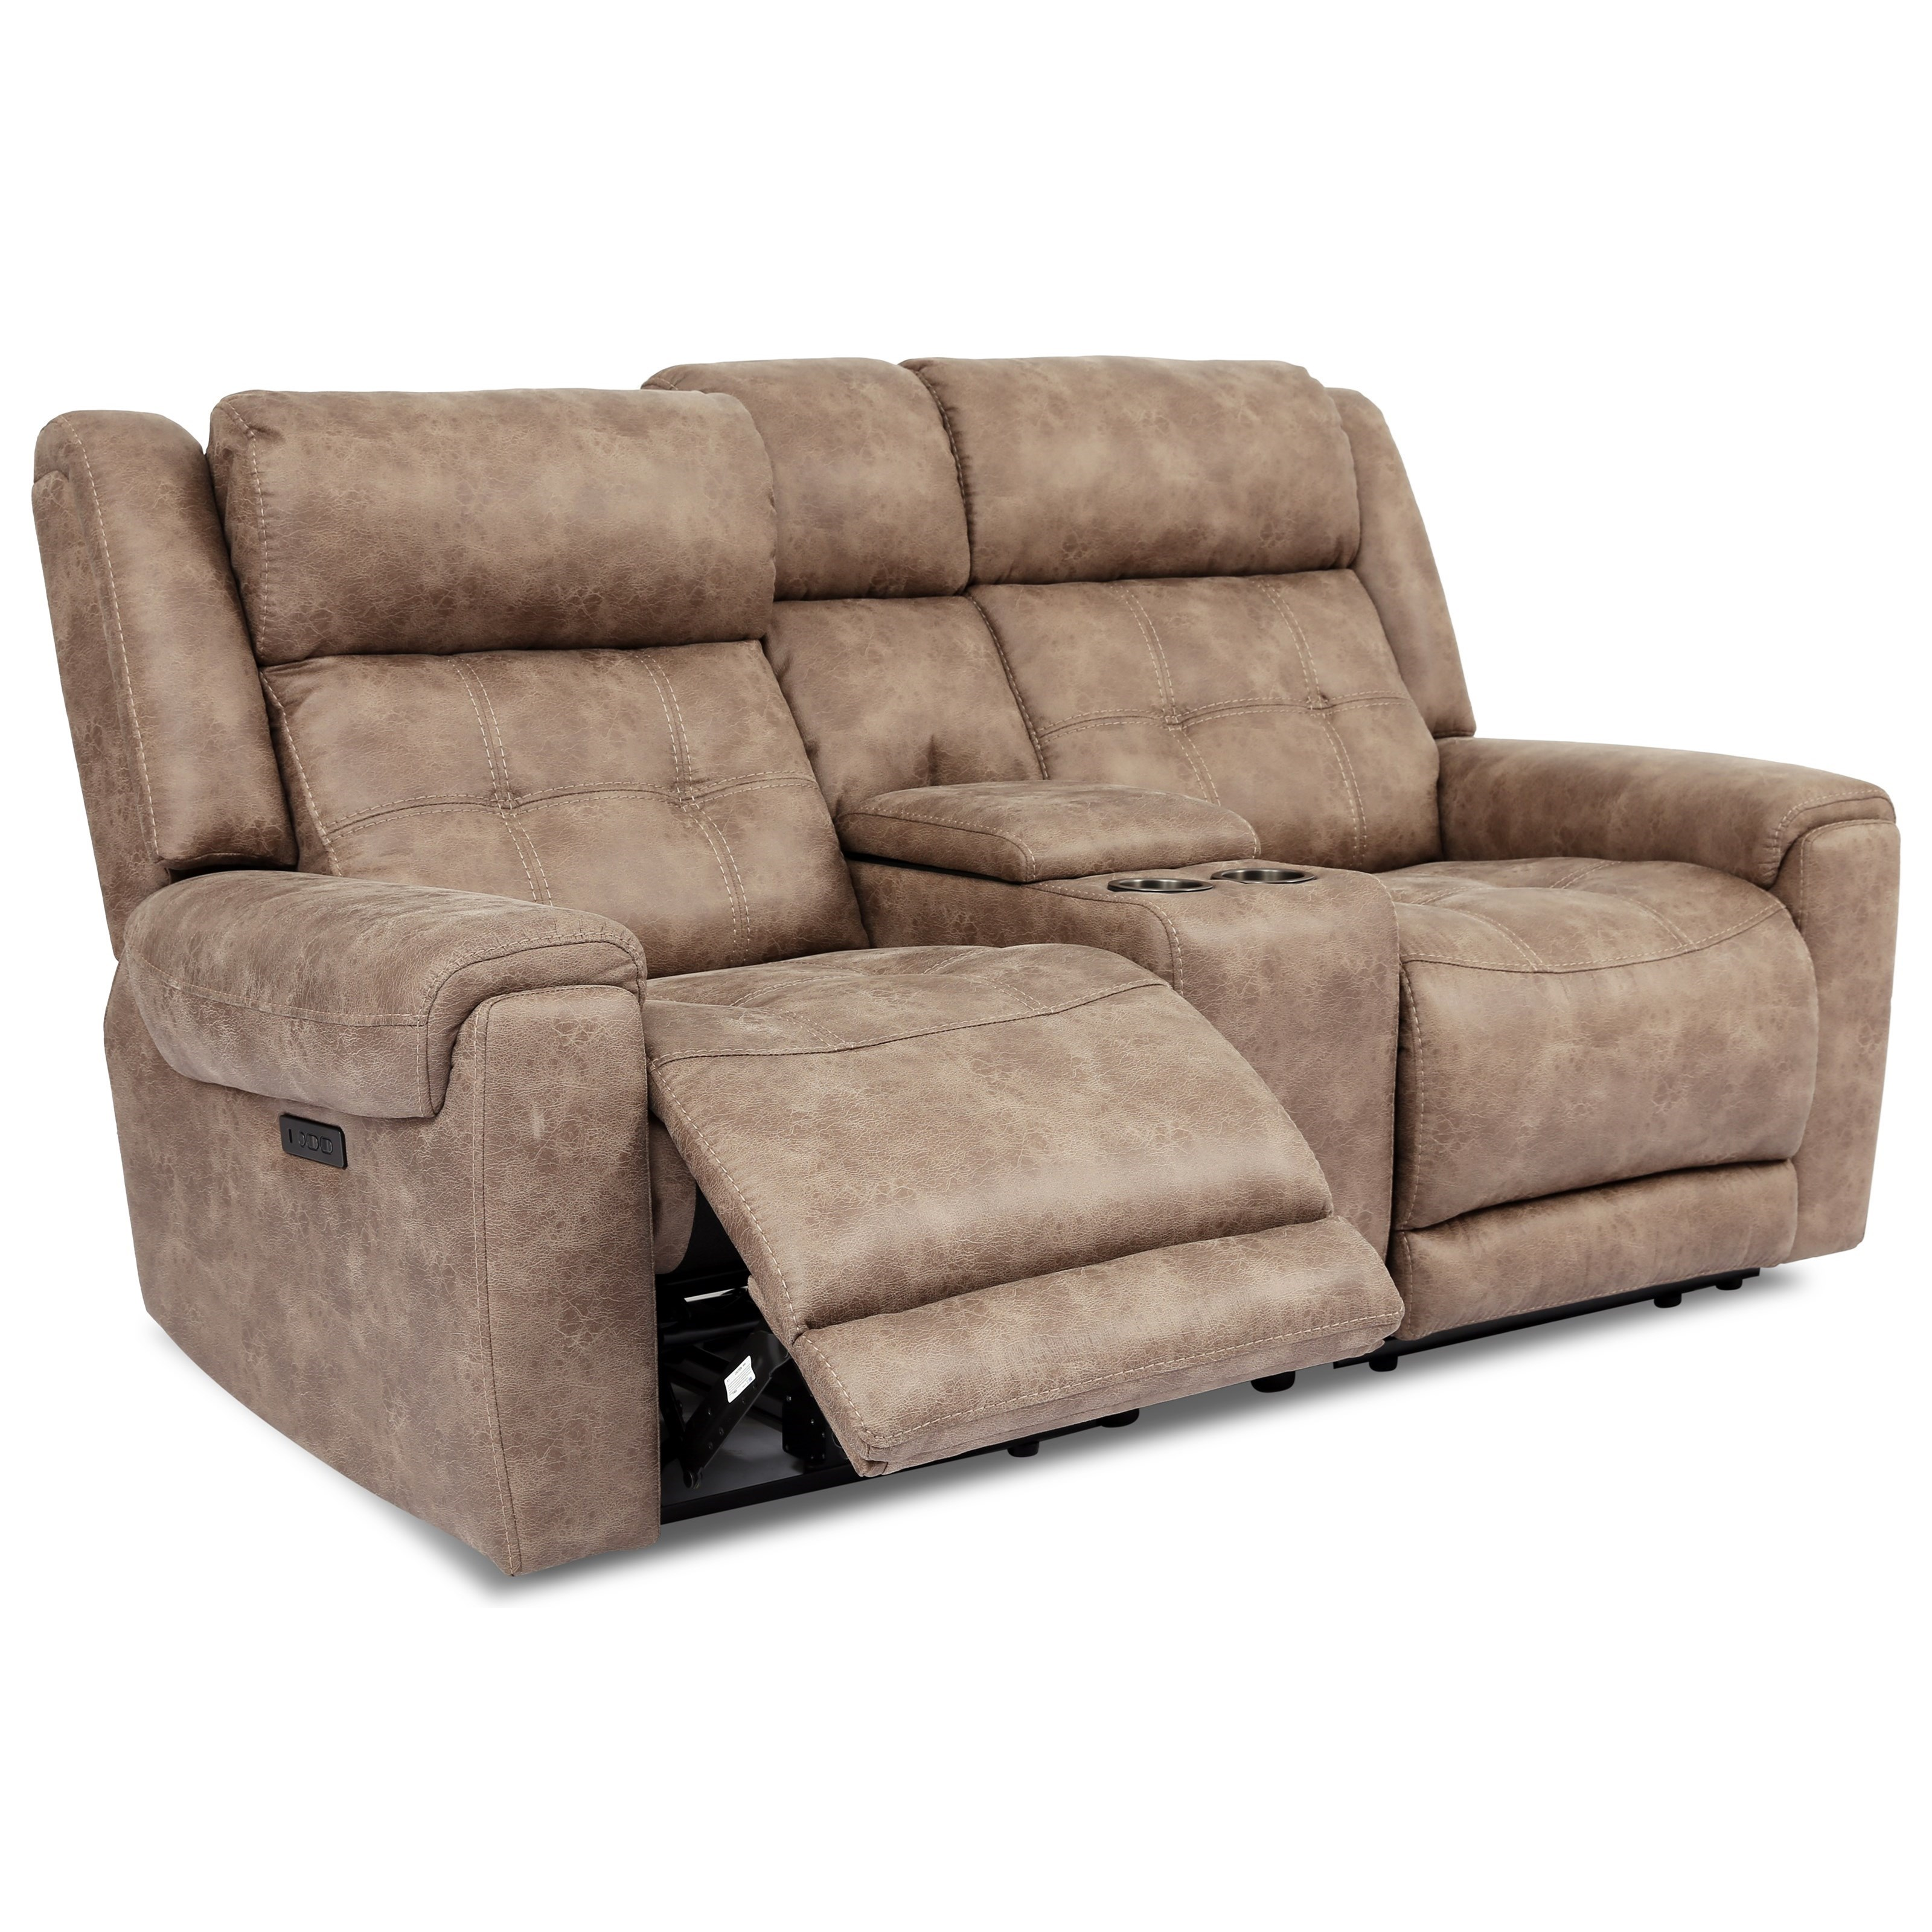 70115 Power Reclining Loveseat by Cheers at Lagniappe Home Store